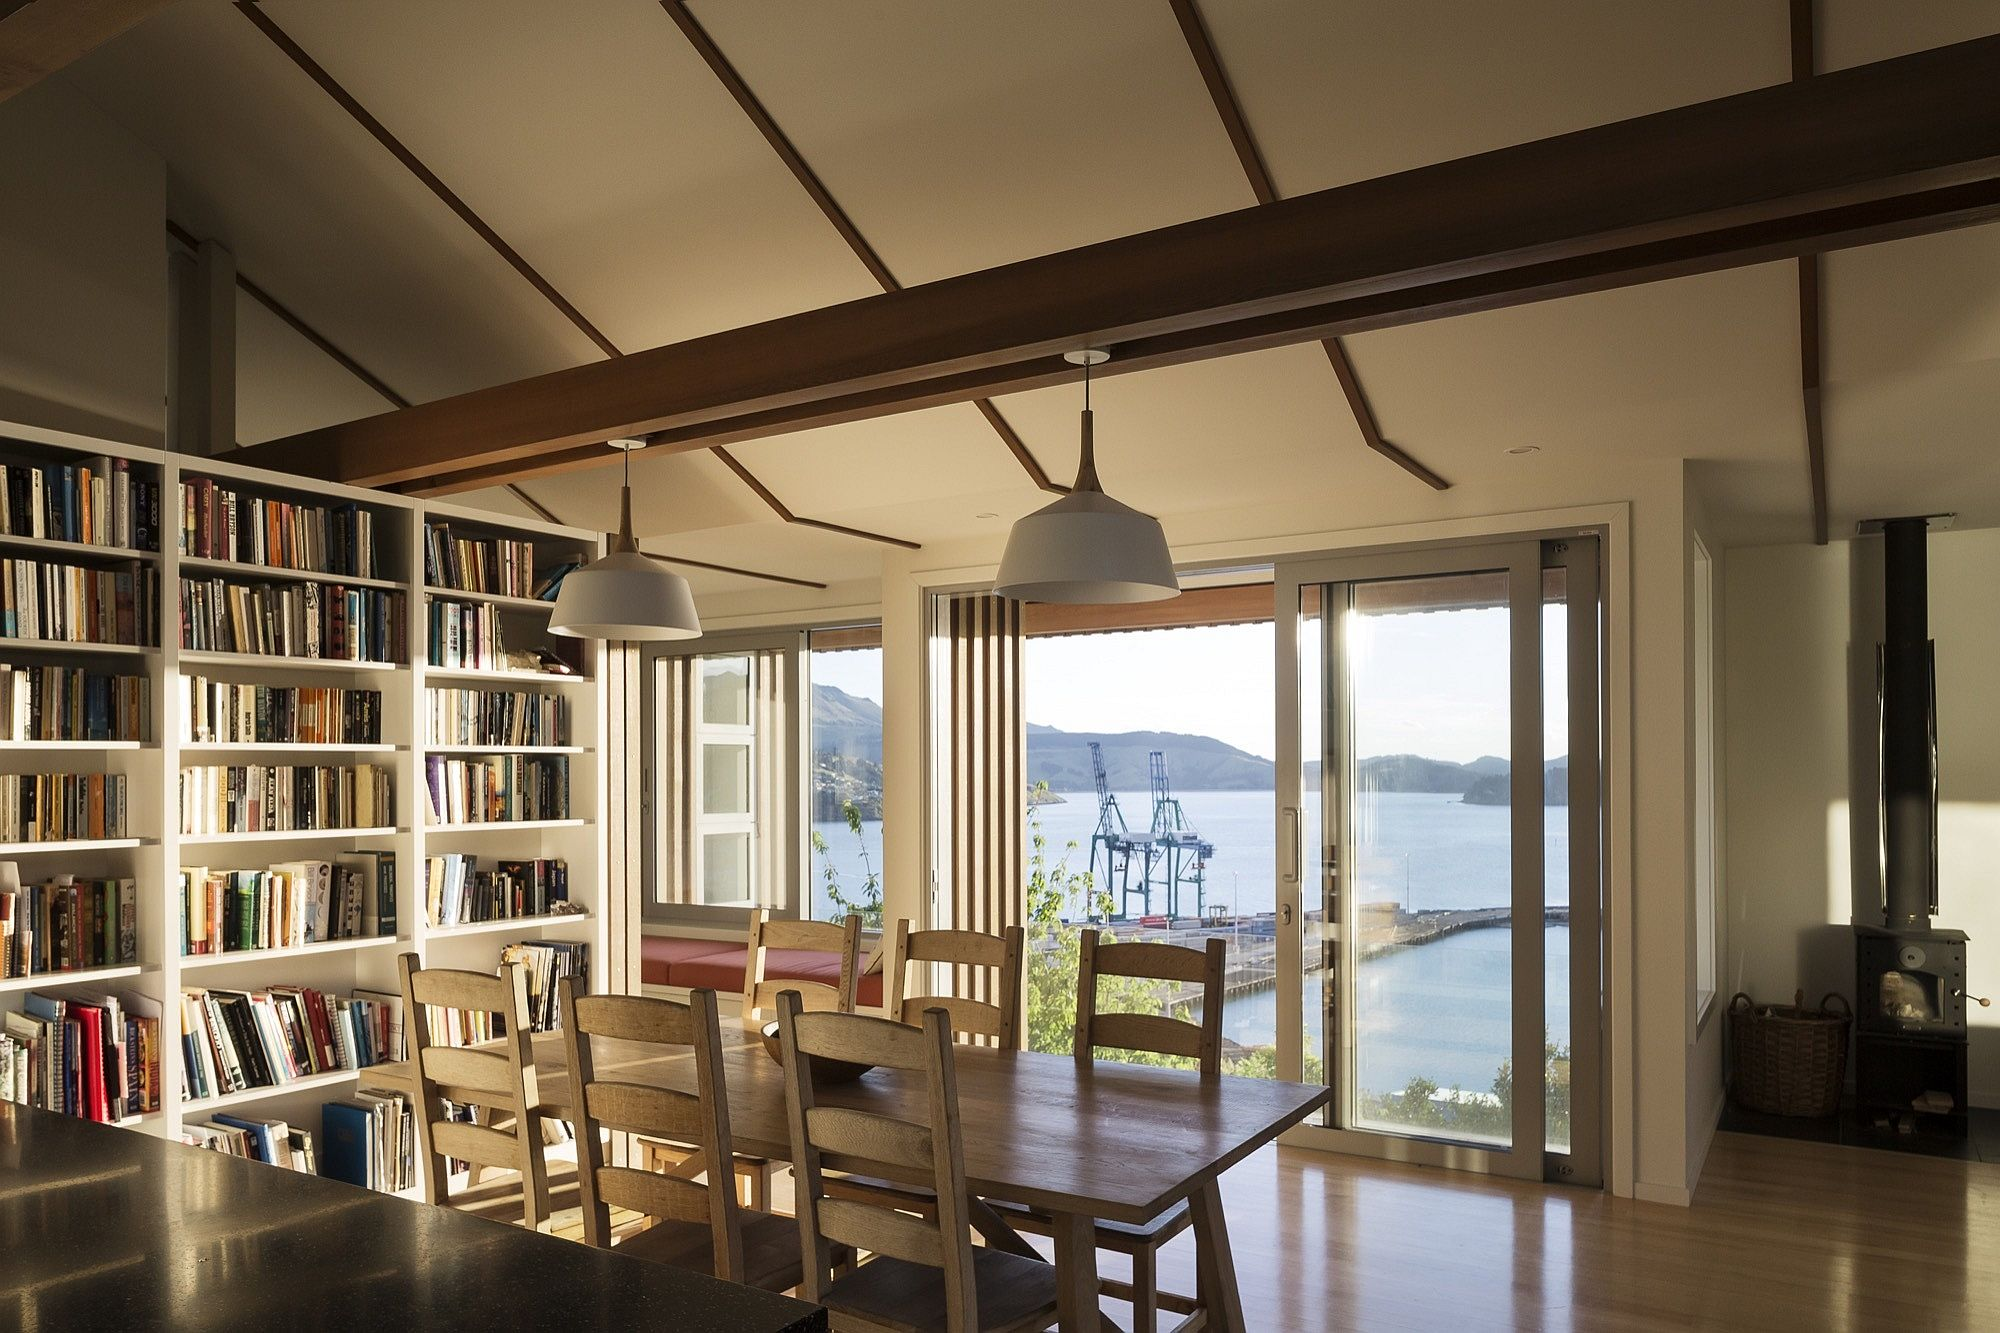 View ofthe ocean from the kitchen and living room